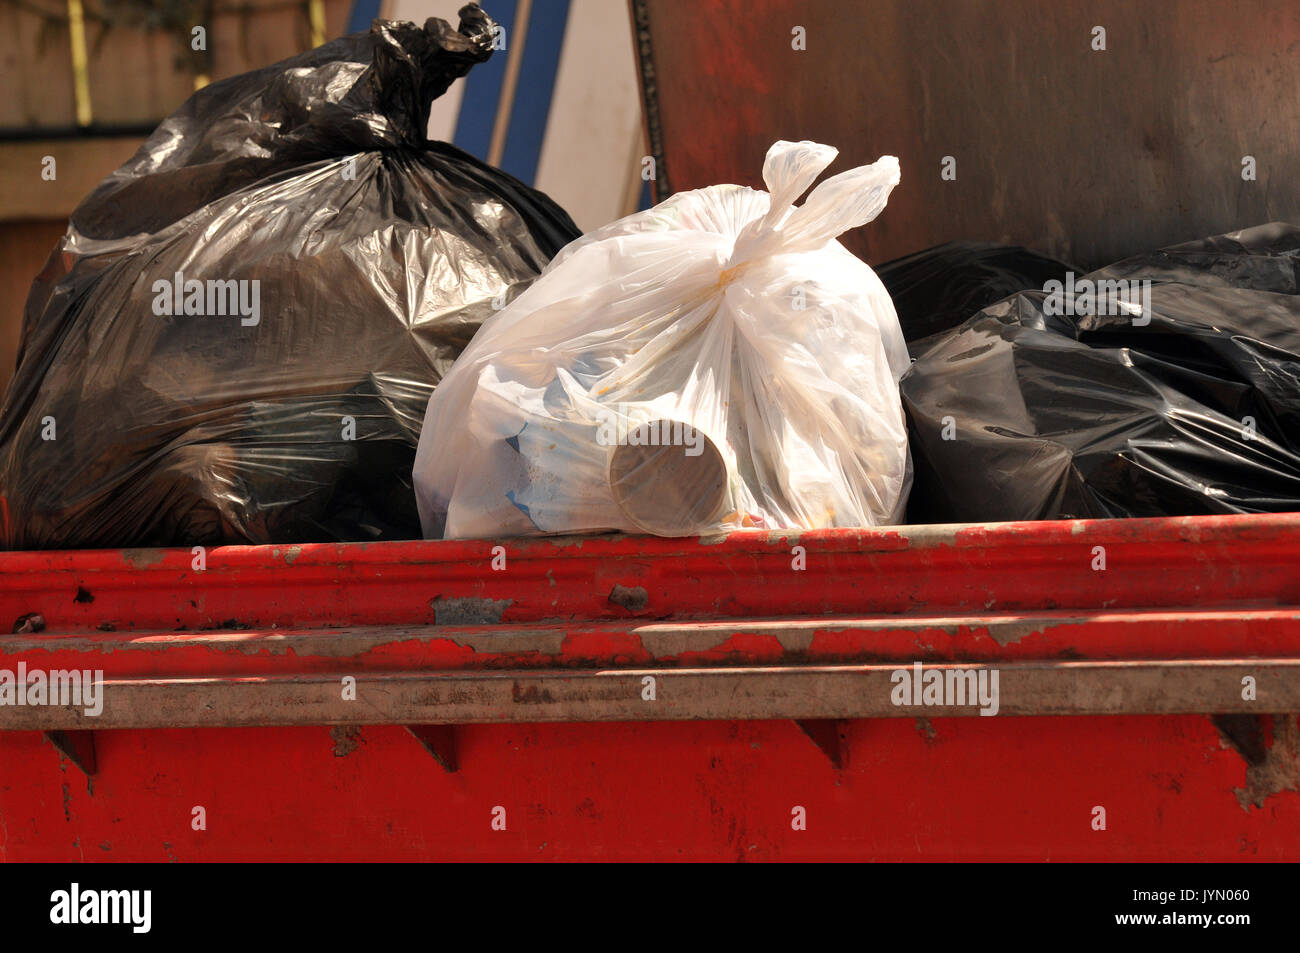 some rubbish recycling card and glass bottles in bins ready for collections overflowing dustbins full of garbage Stock Photo